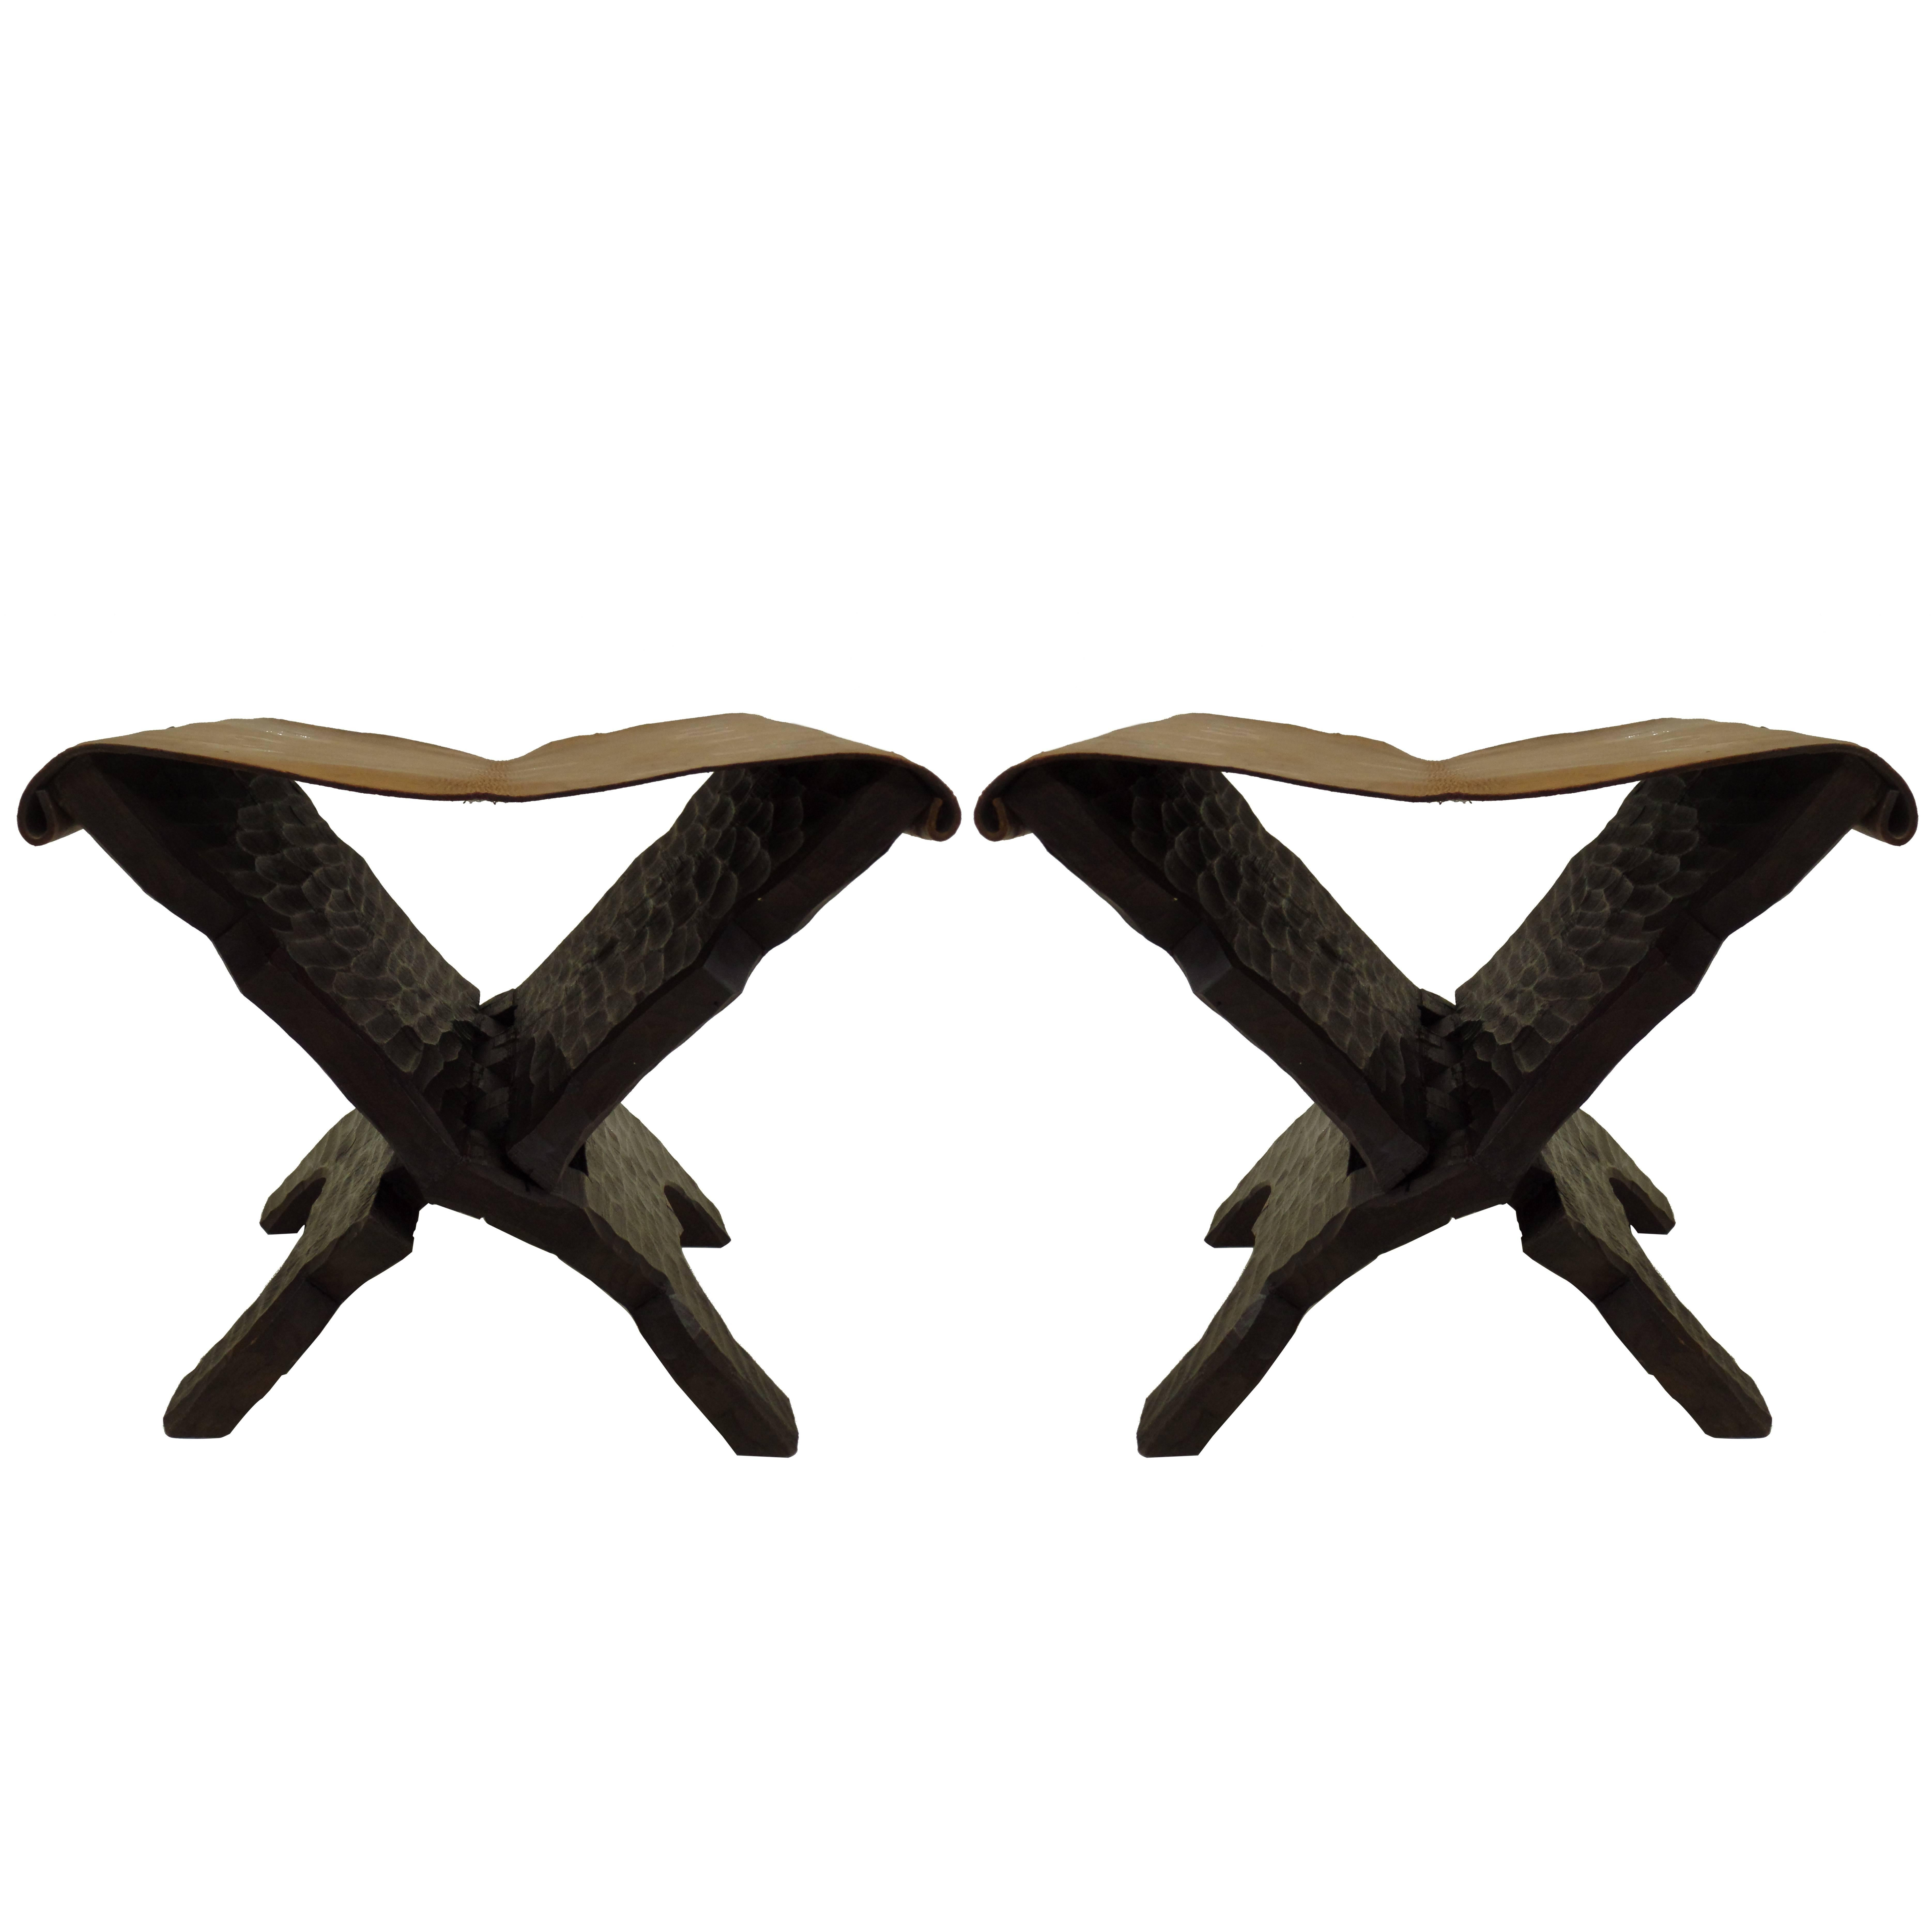 Pair of French Mid-Century Modern Carved Wood and Leather Stools or Benches